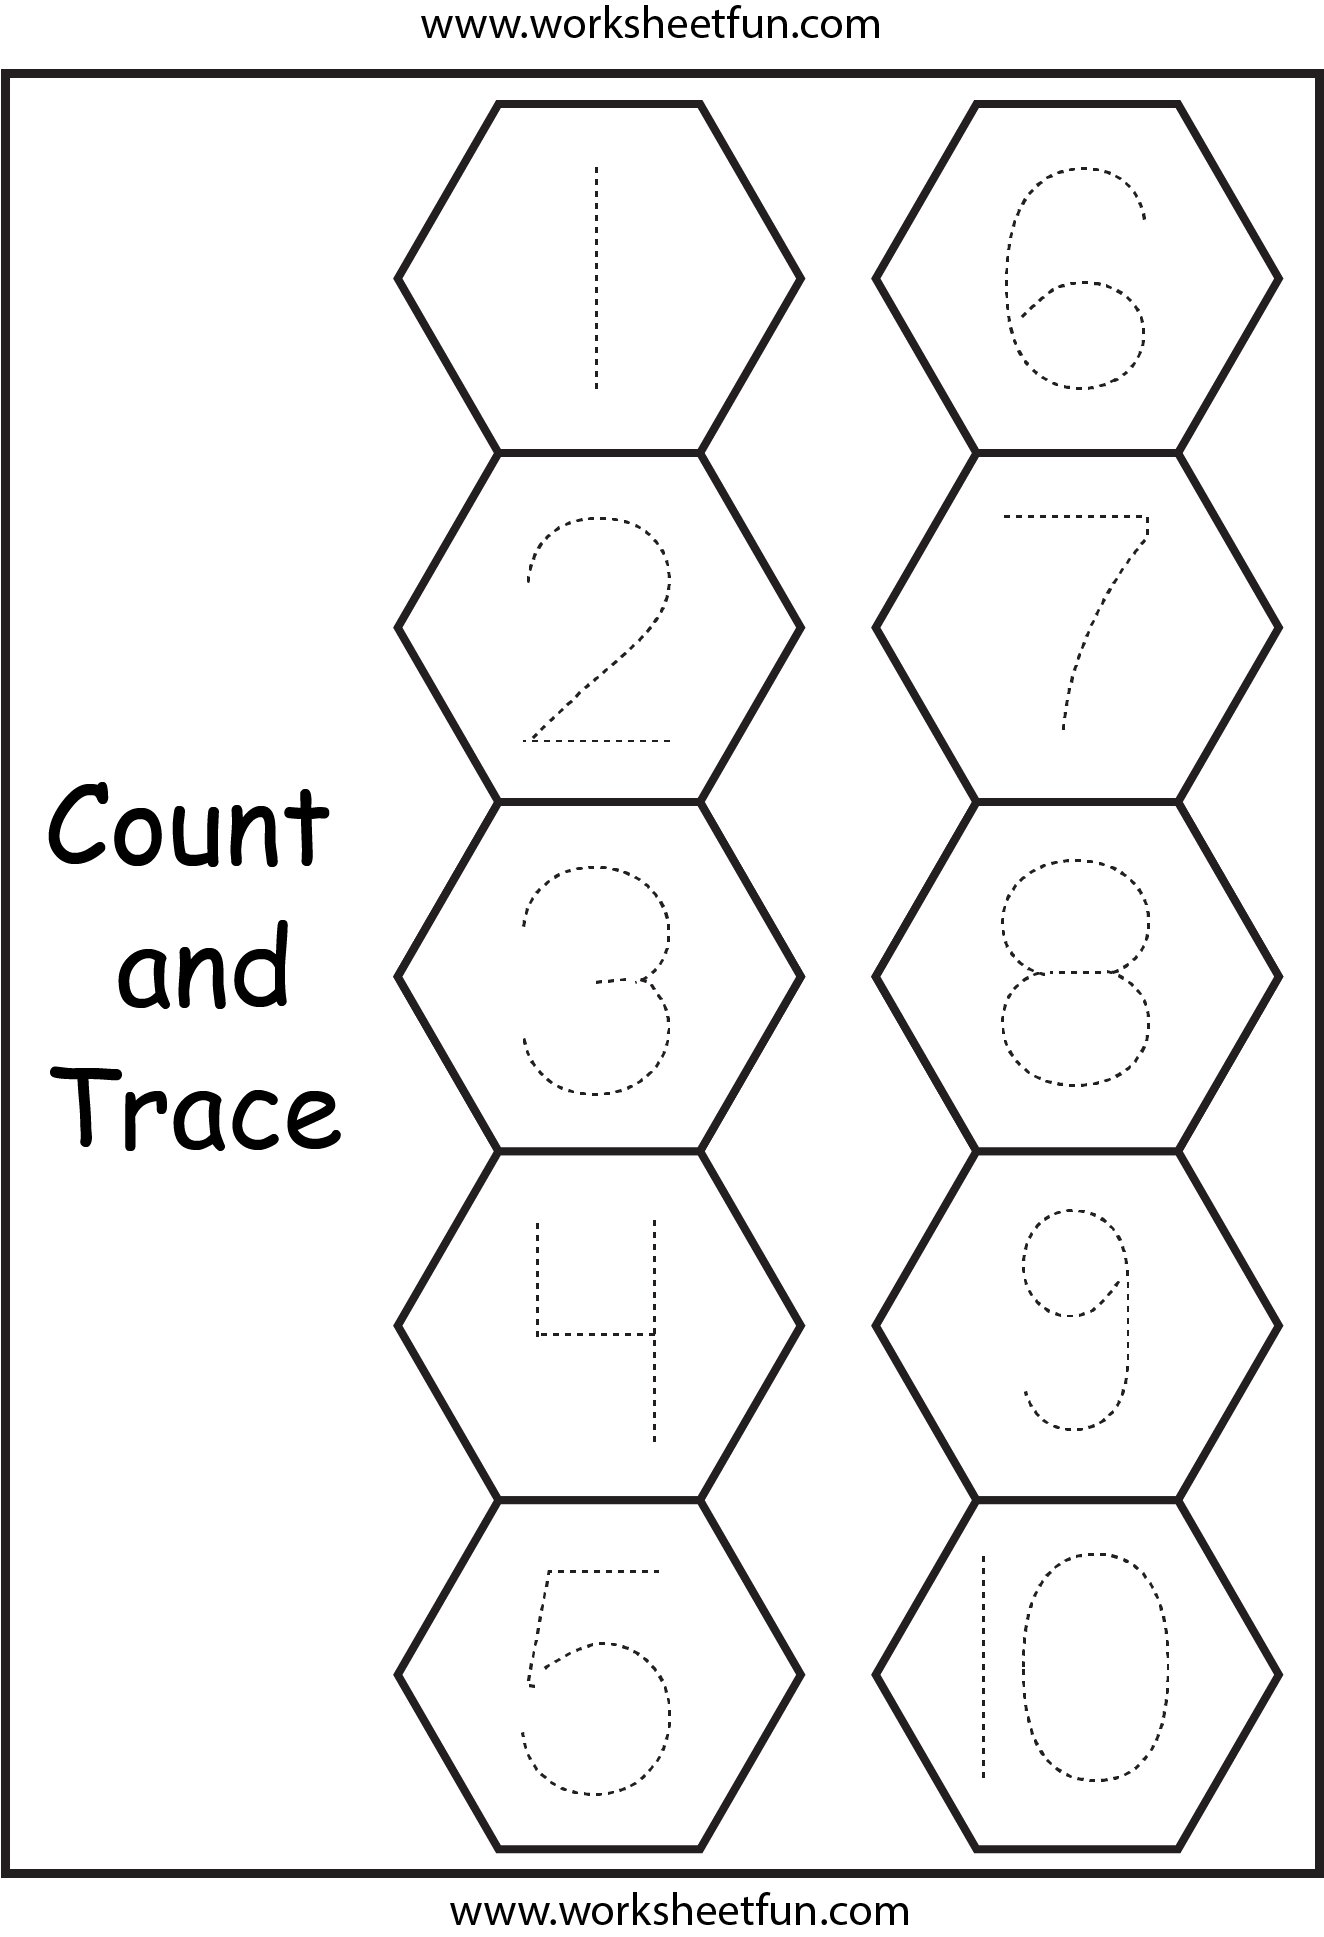 Numbers tracing printables for preschoolers - Number Tracing 1 10 Preschool Worksheetsnumber